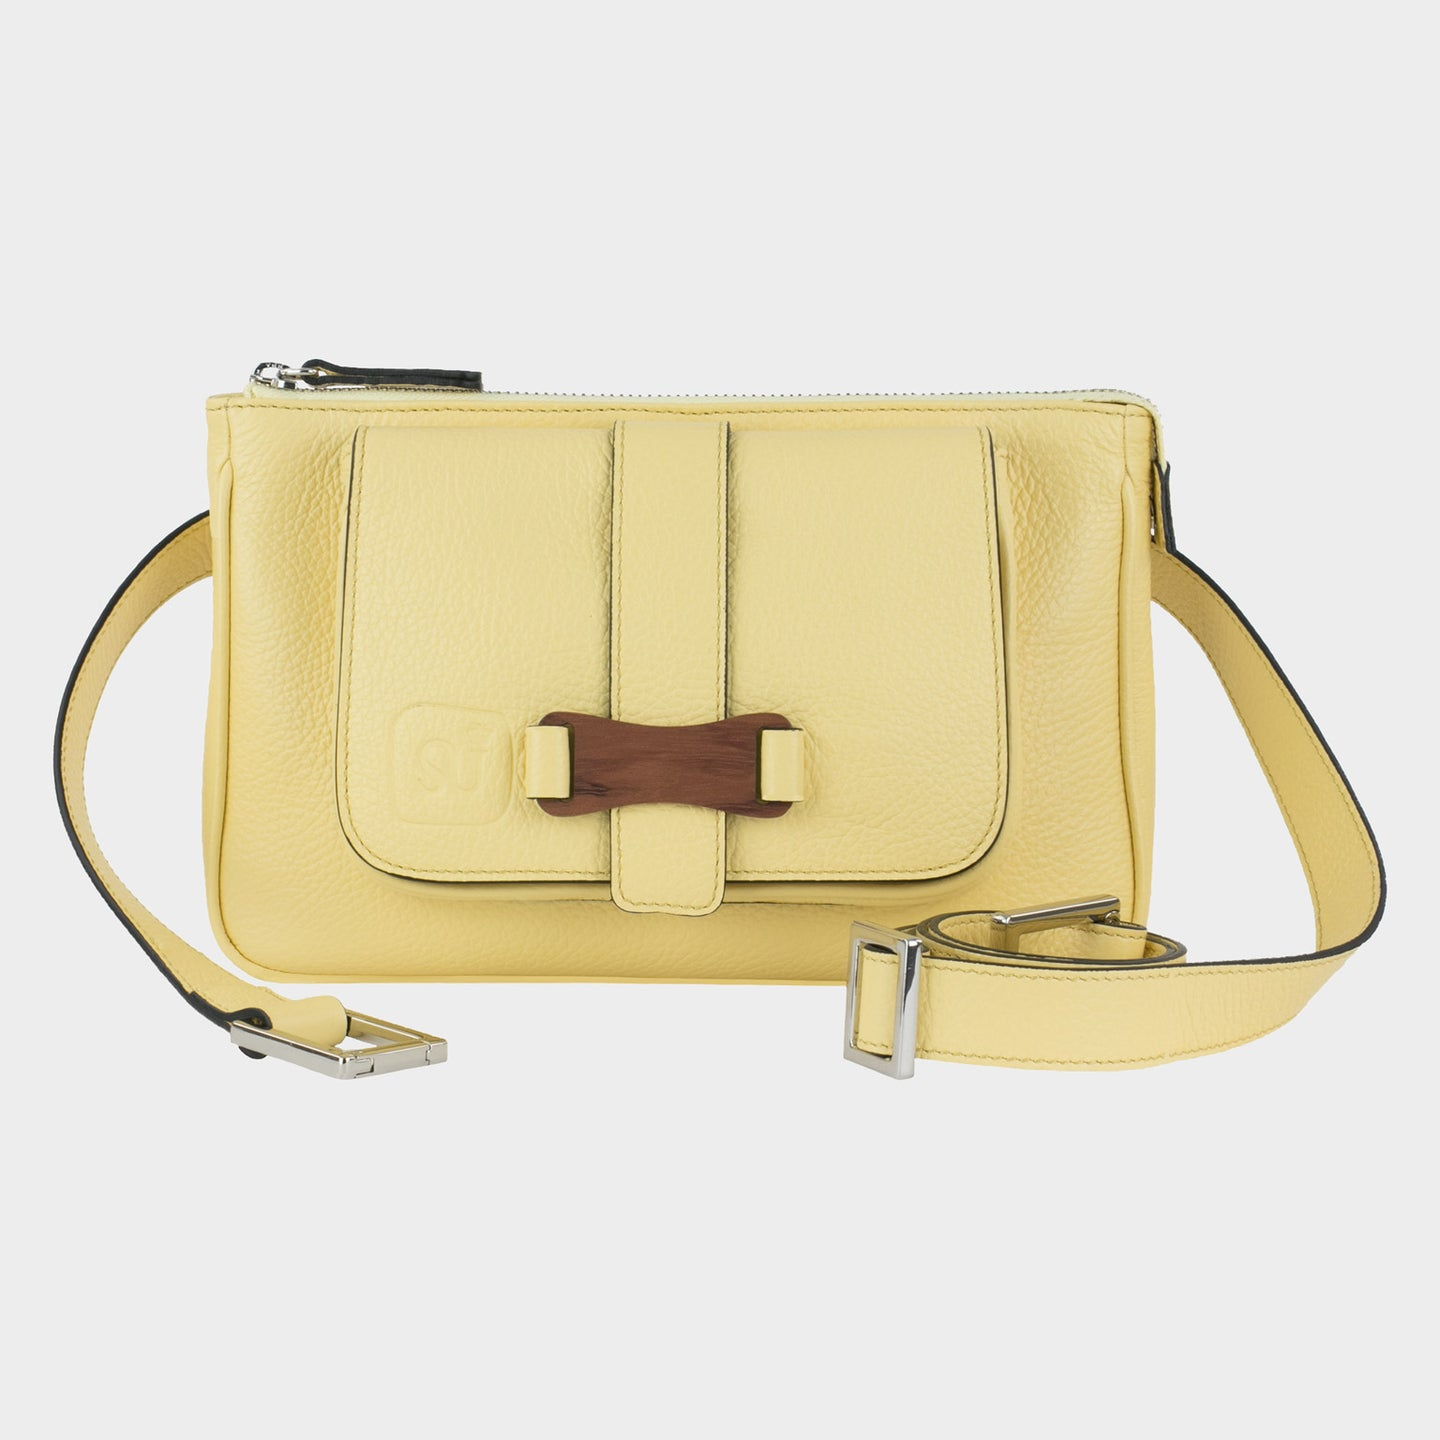 Bags-by-SUMAGEZA-SU-Le-Double-Crossbody-lemon-yellow-calfskin, front view-1, also worn as a belt, shoulder bag or clutch.